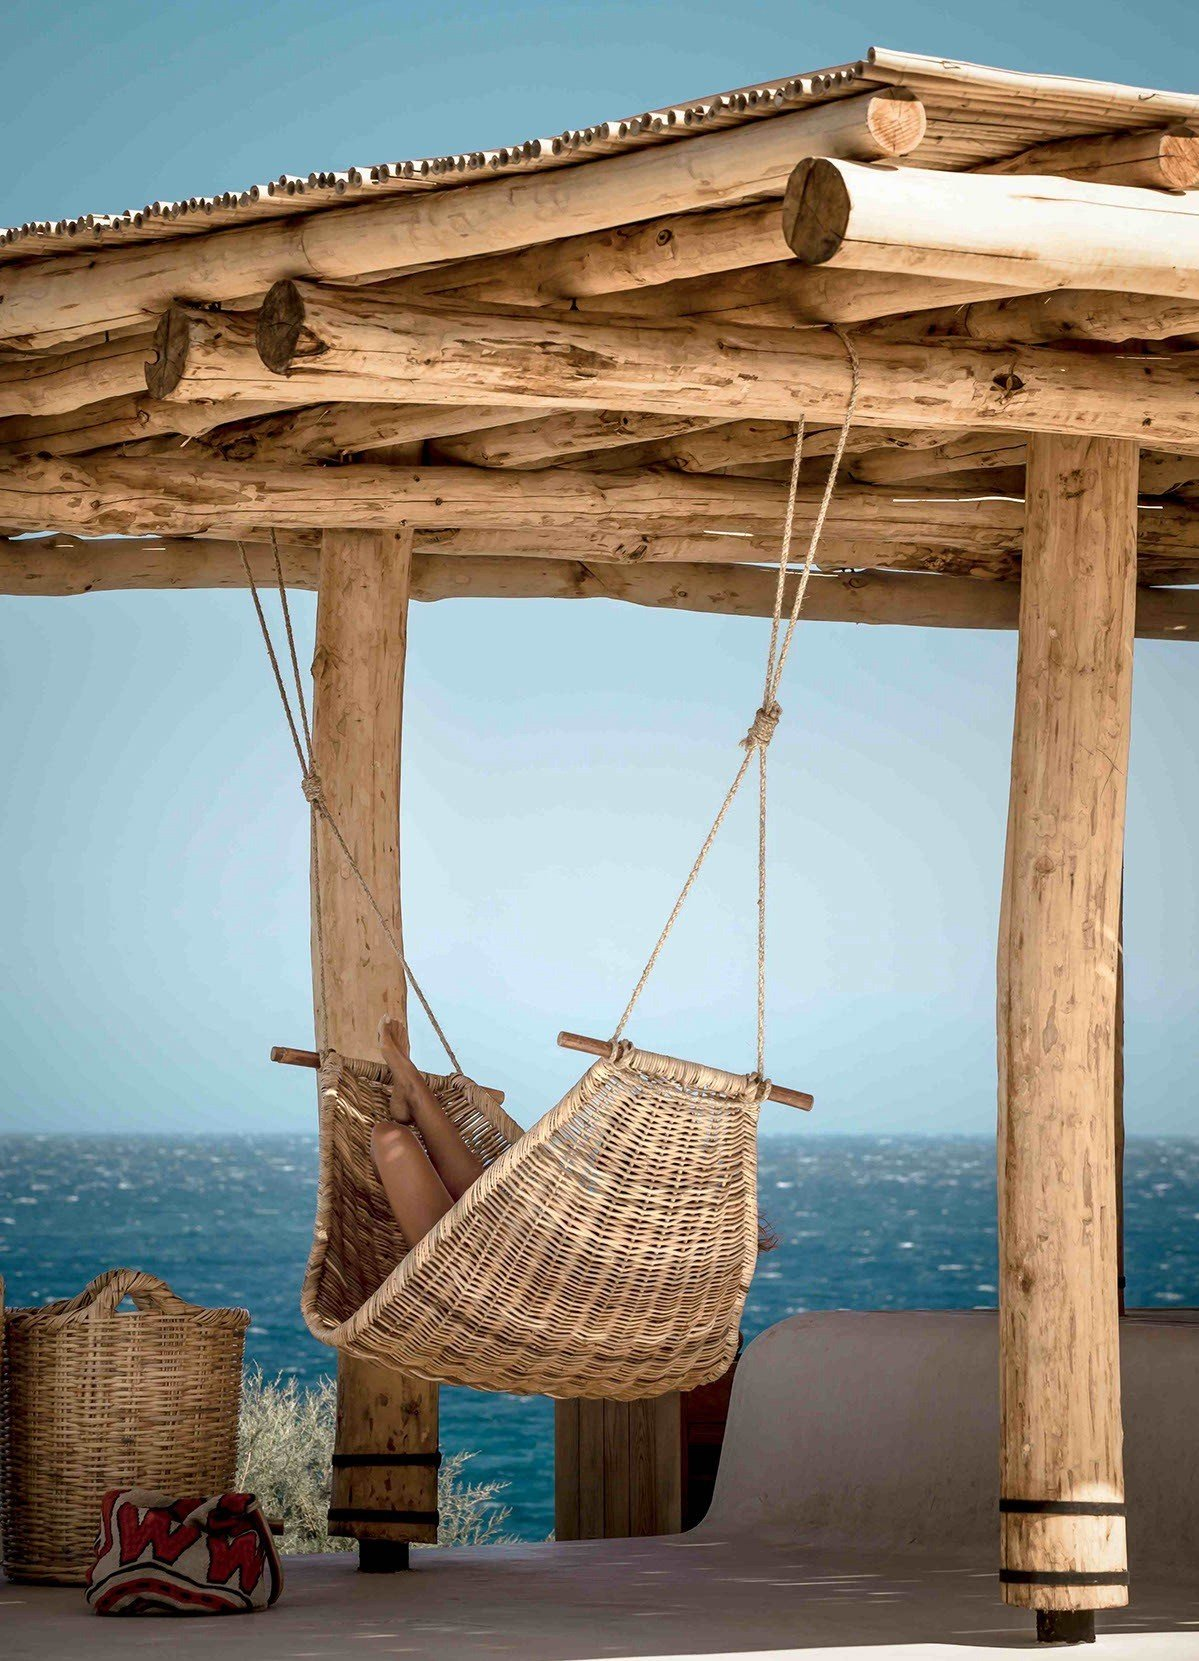 Wooden arbor at the seaside with hammock